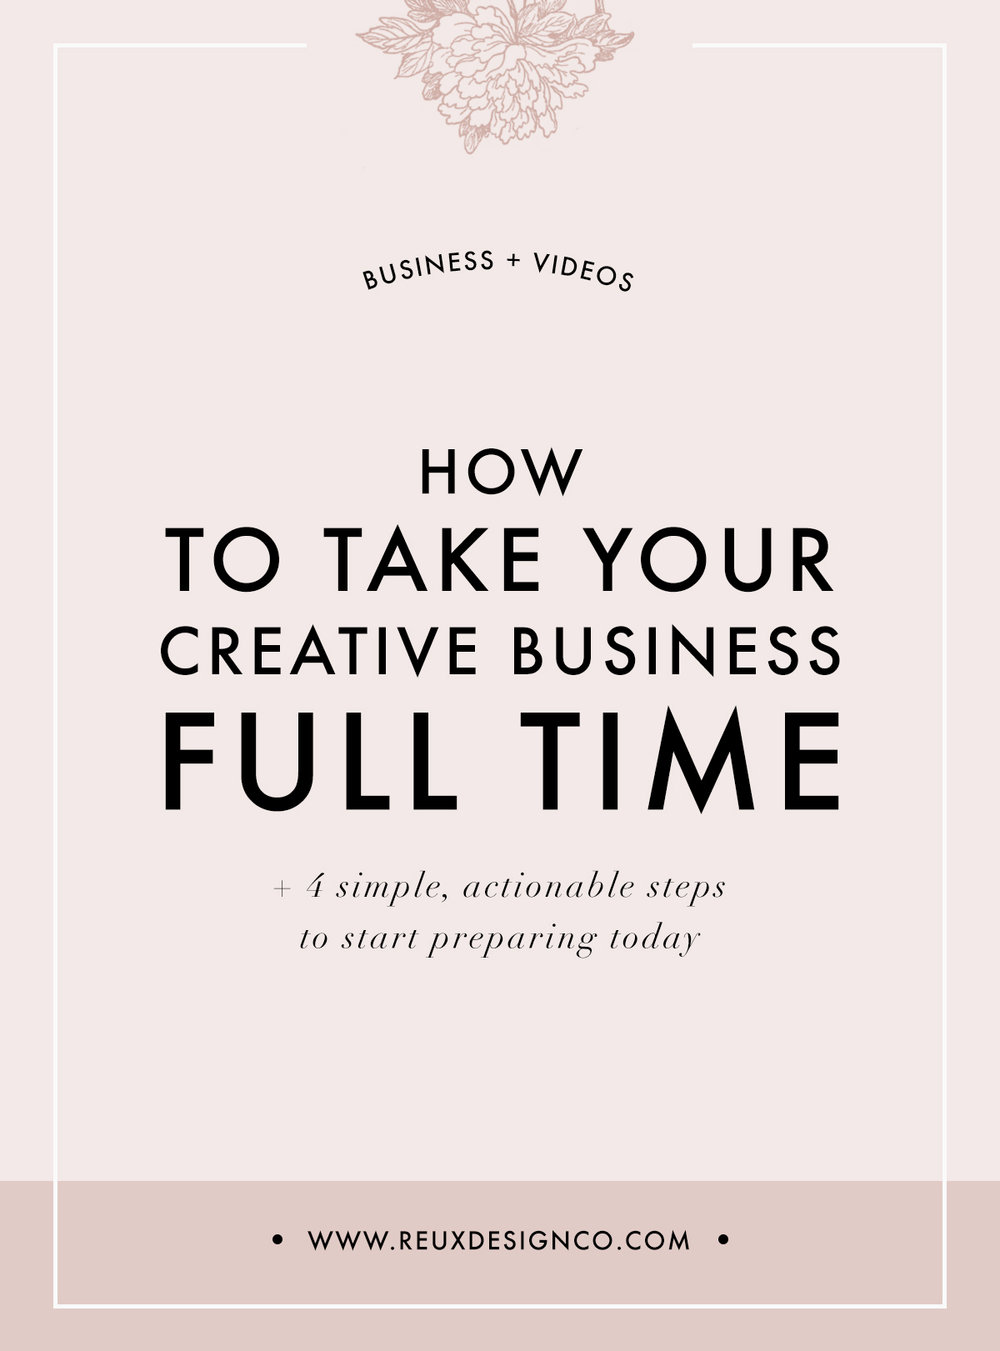 How to Prepare to Take Your Creative Business Full-time | Reux Design Co.